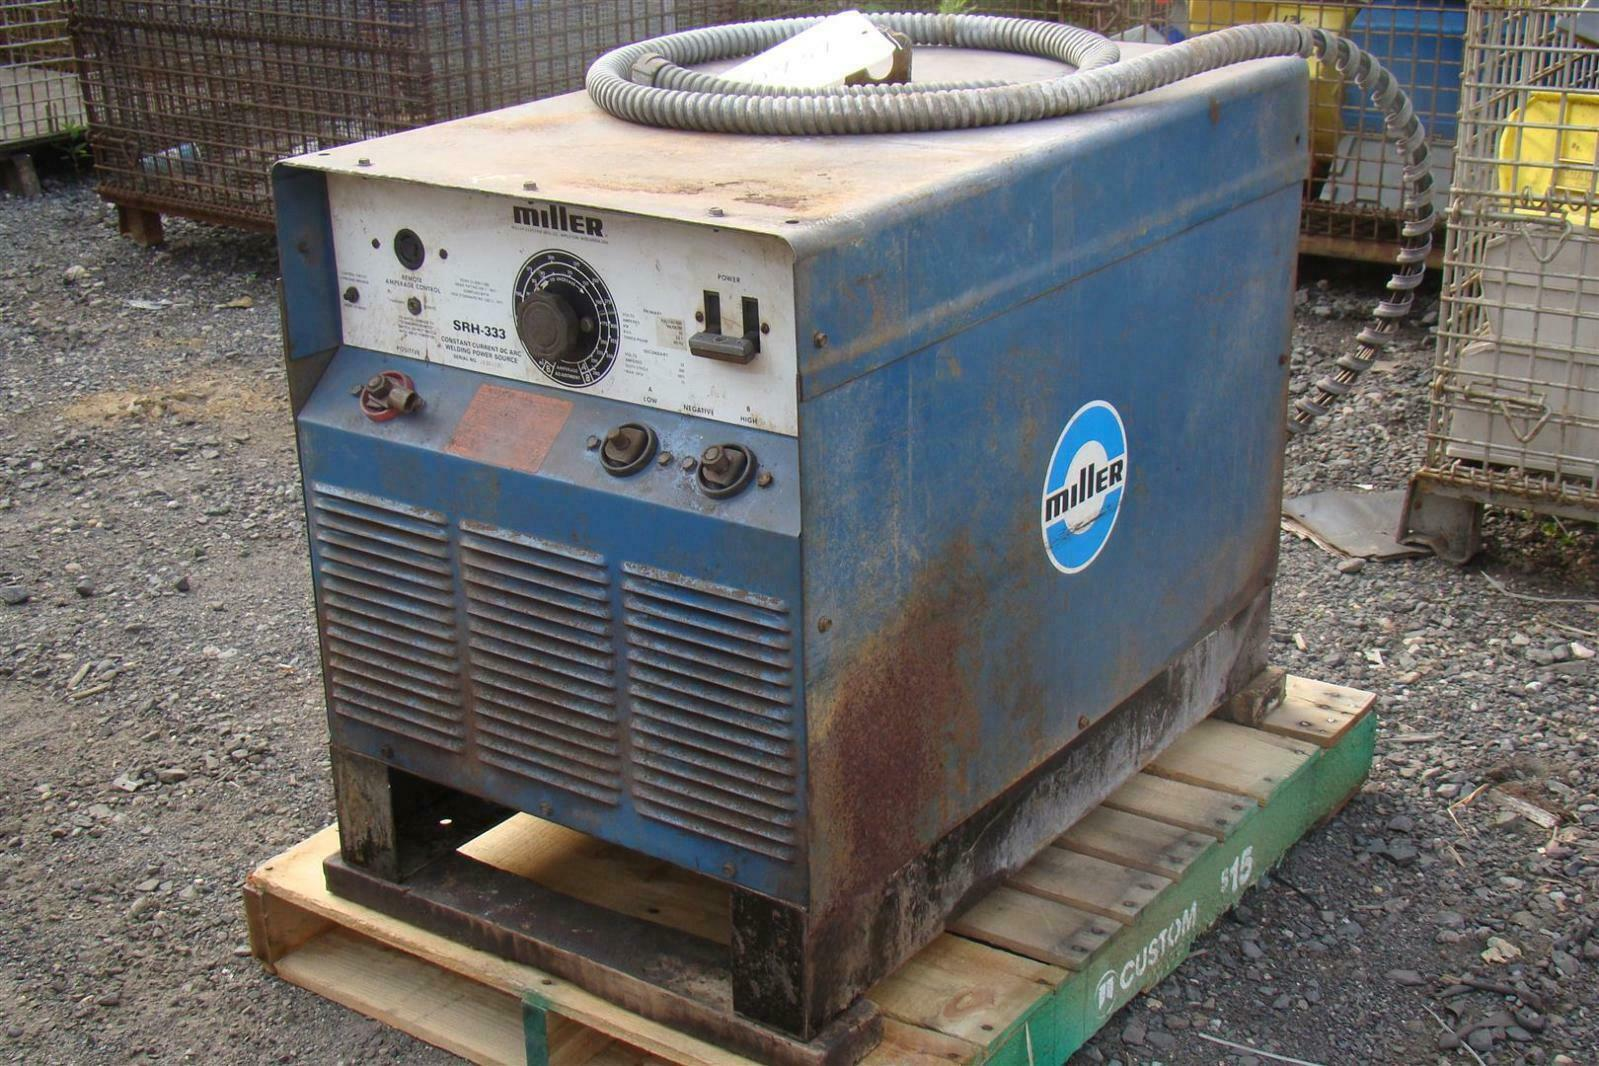 Miller Welders For Sale >> Details About Miller Constant Current Dc Arc Welder Ja381131 Srh 333 Tig Stick 3 Phase